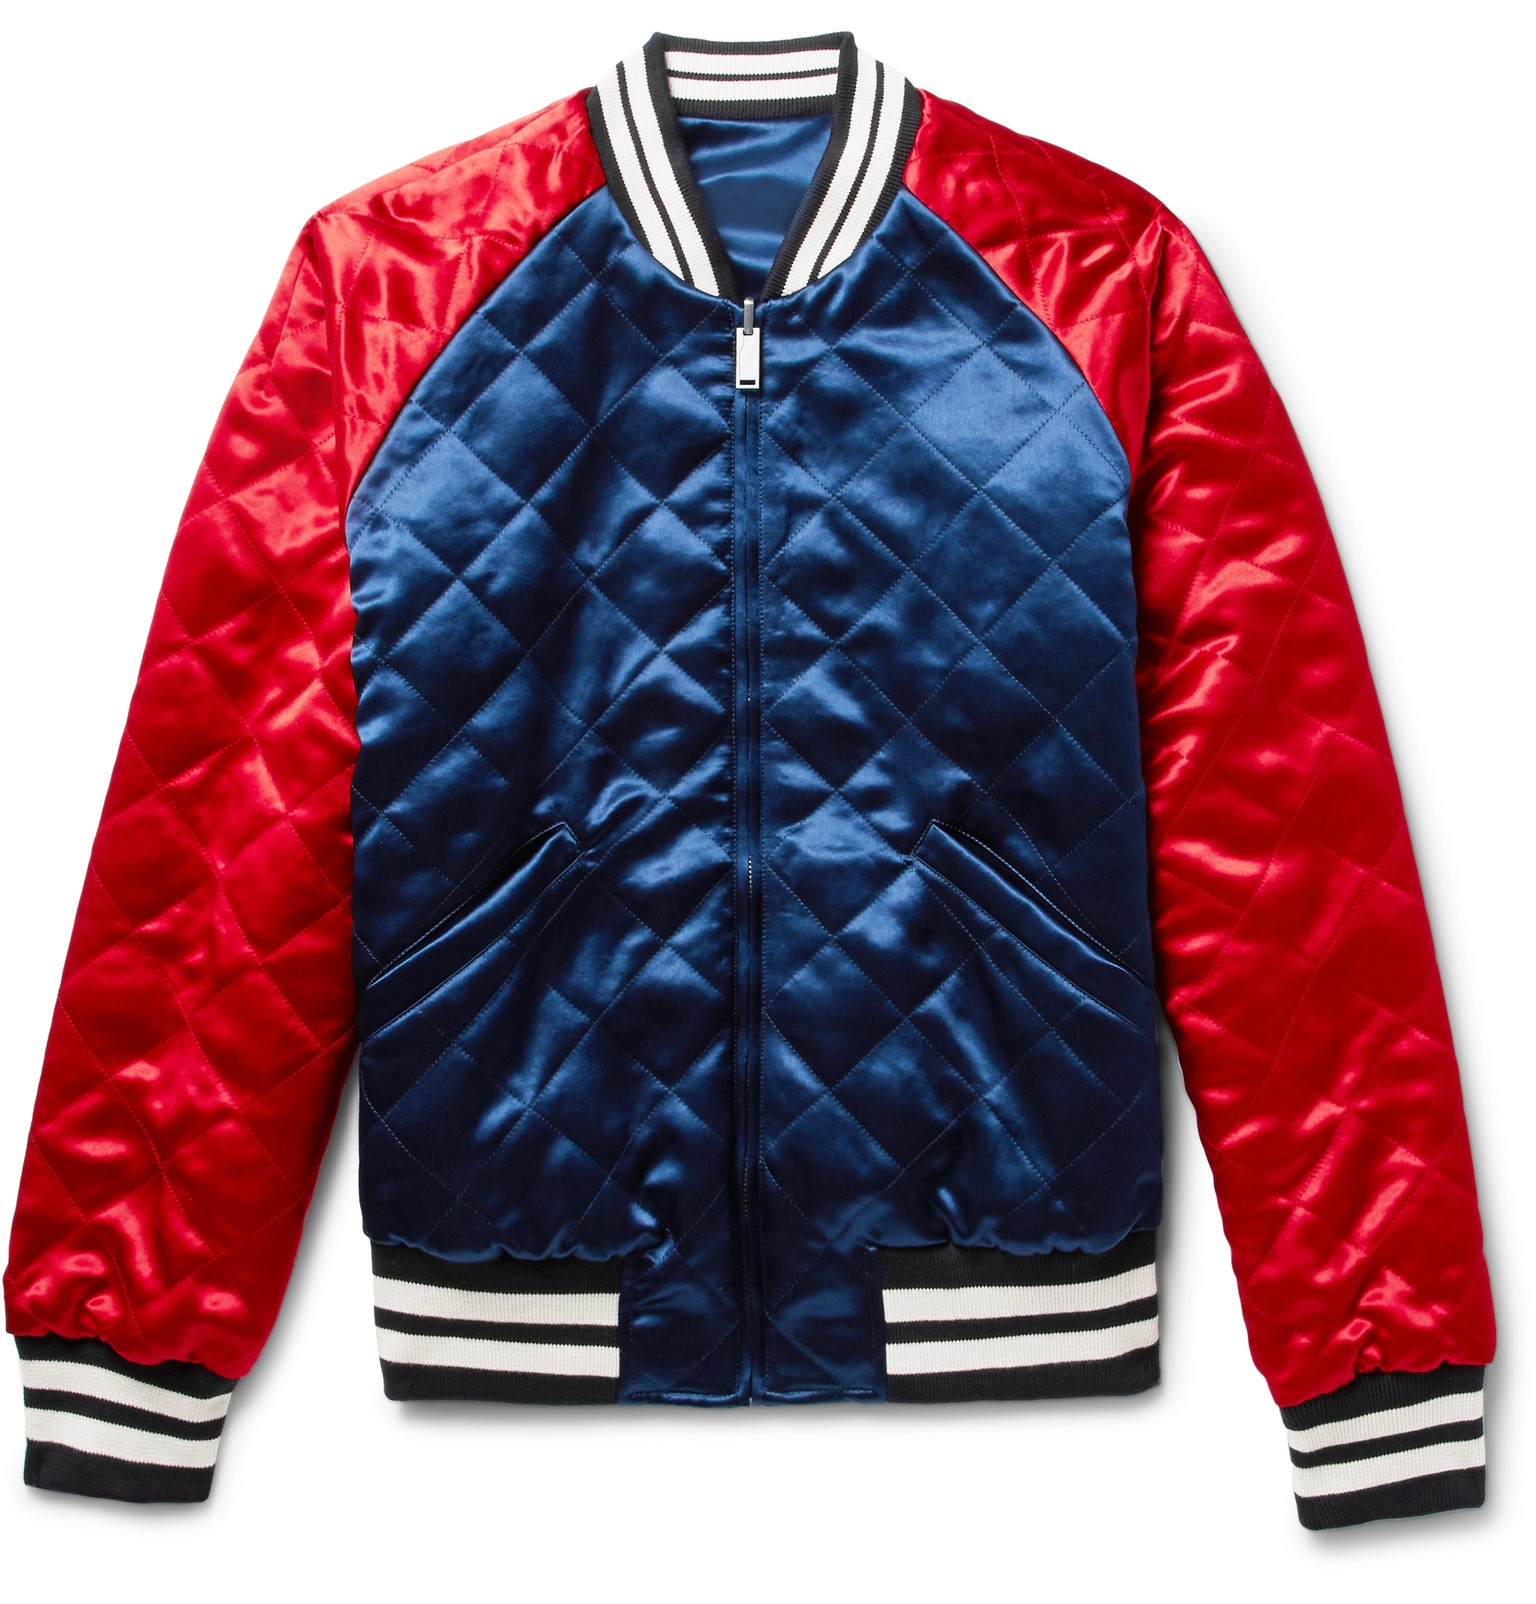 ea10991ad8a Gucci - Reversible Webbing-Trimmed Satin-Twill Bomber Jacket